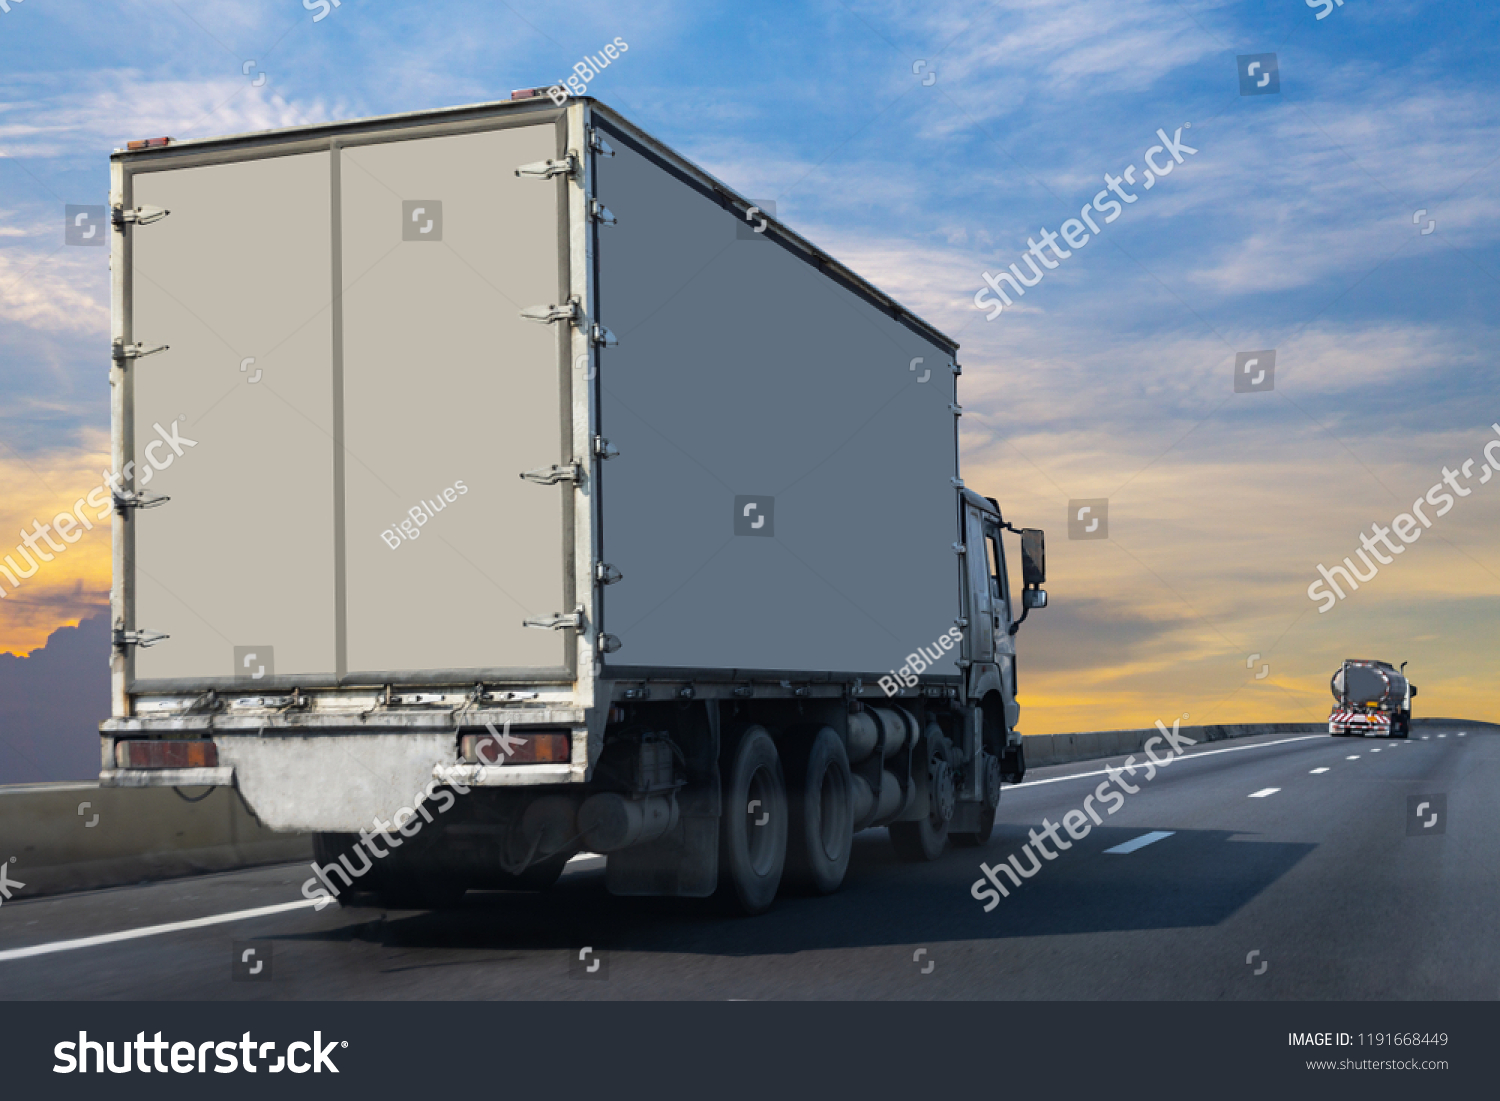 White Truck on highway road with  container, transportation concept.,import,export logistic industrial Transporting Land transport on the asphalt expressway  #1191668449